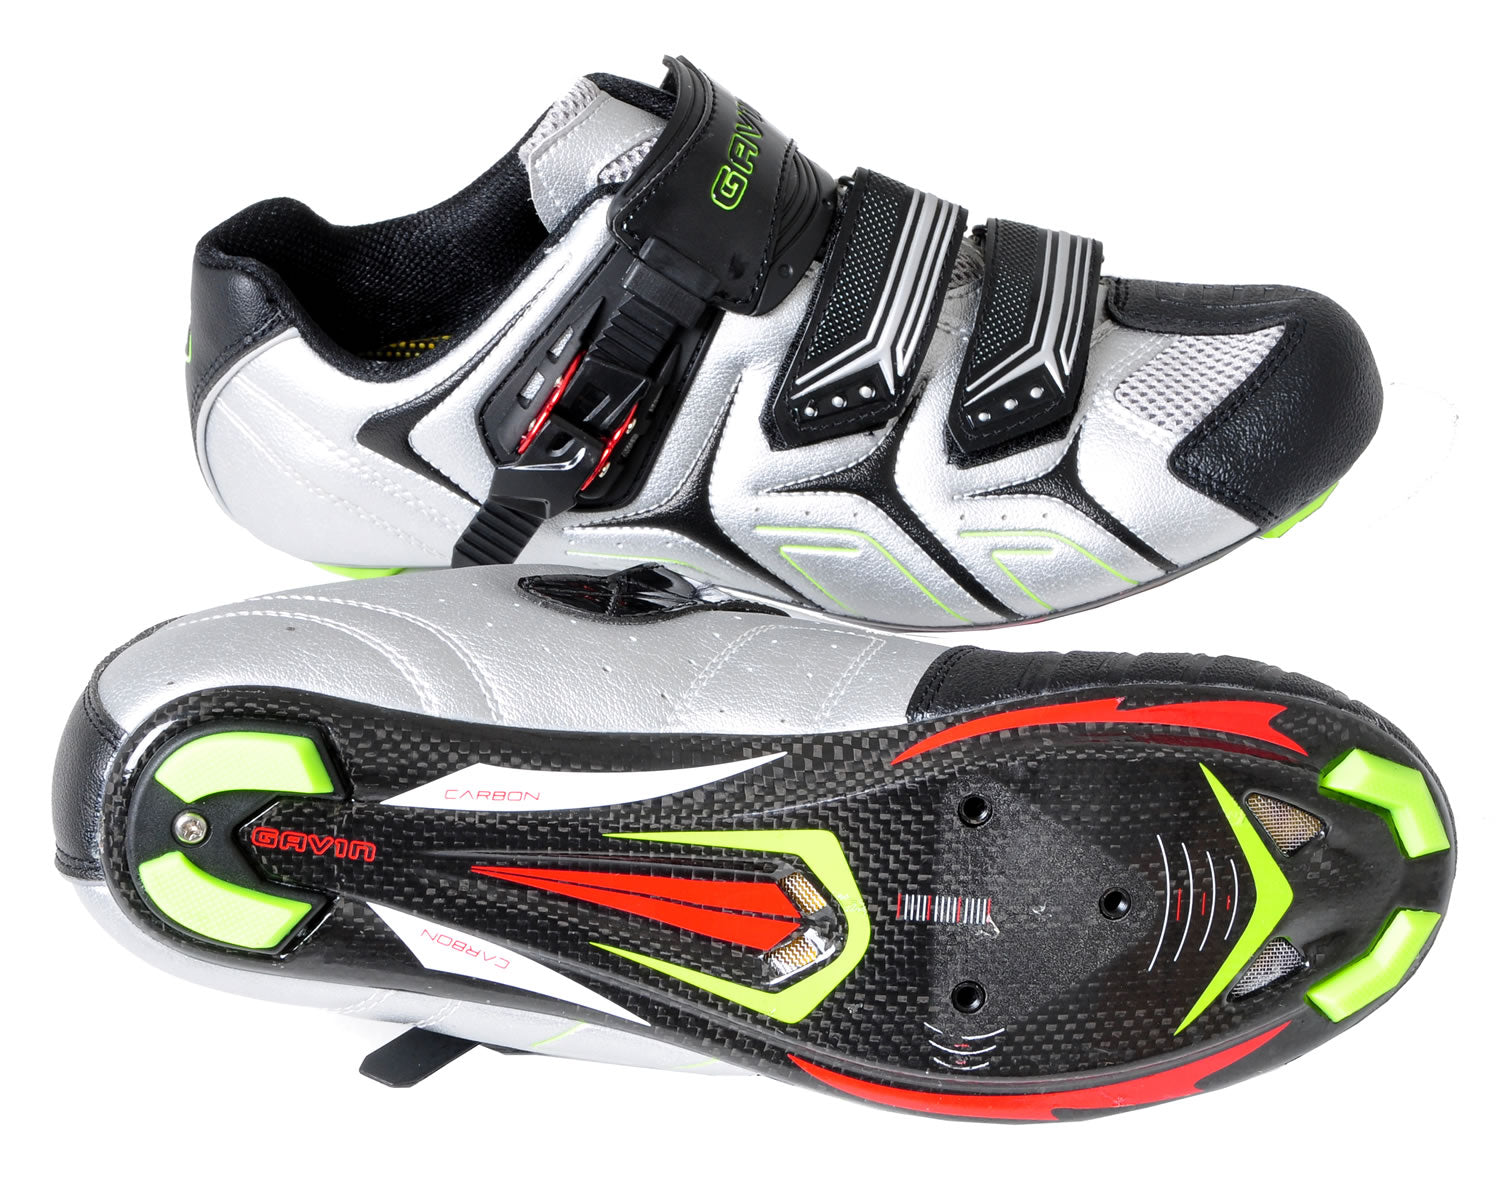 products/525-CARBON-SHOE__01.jpg_4.jpg